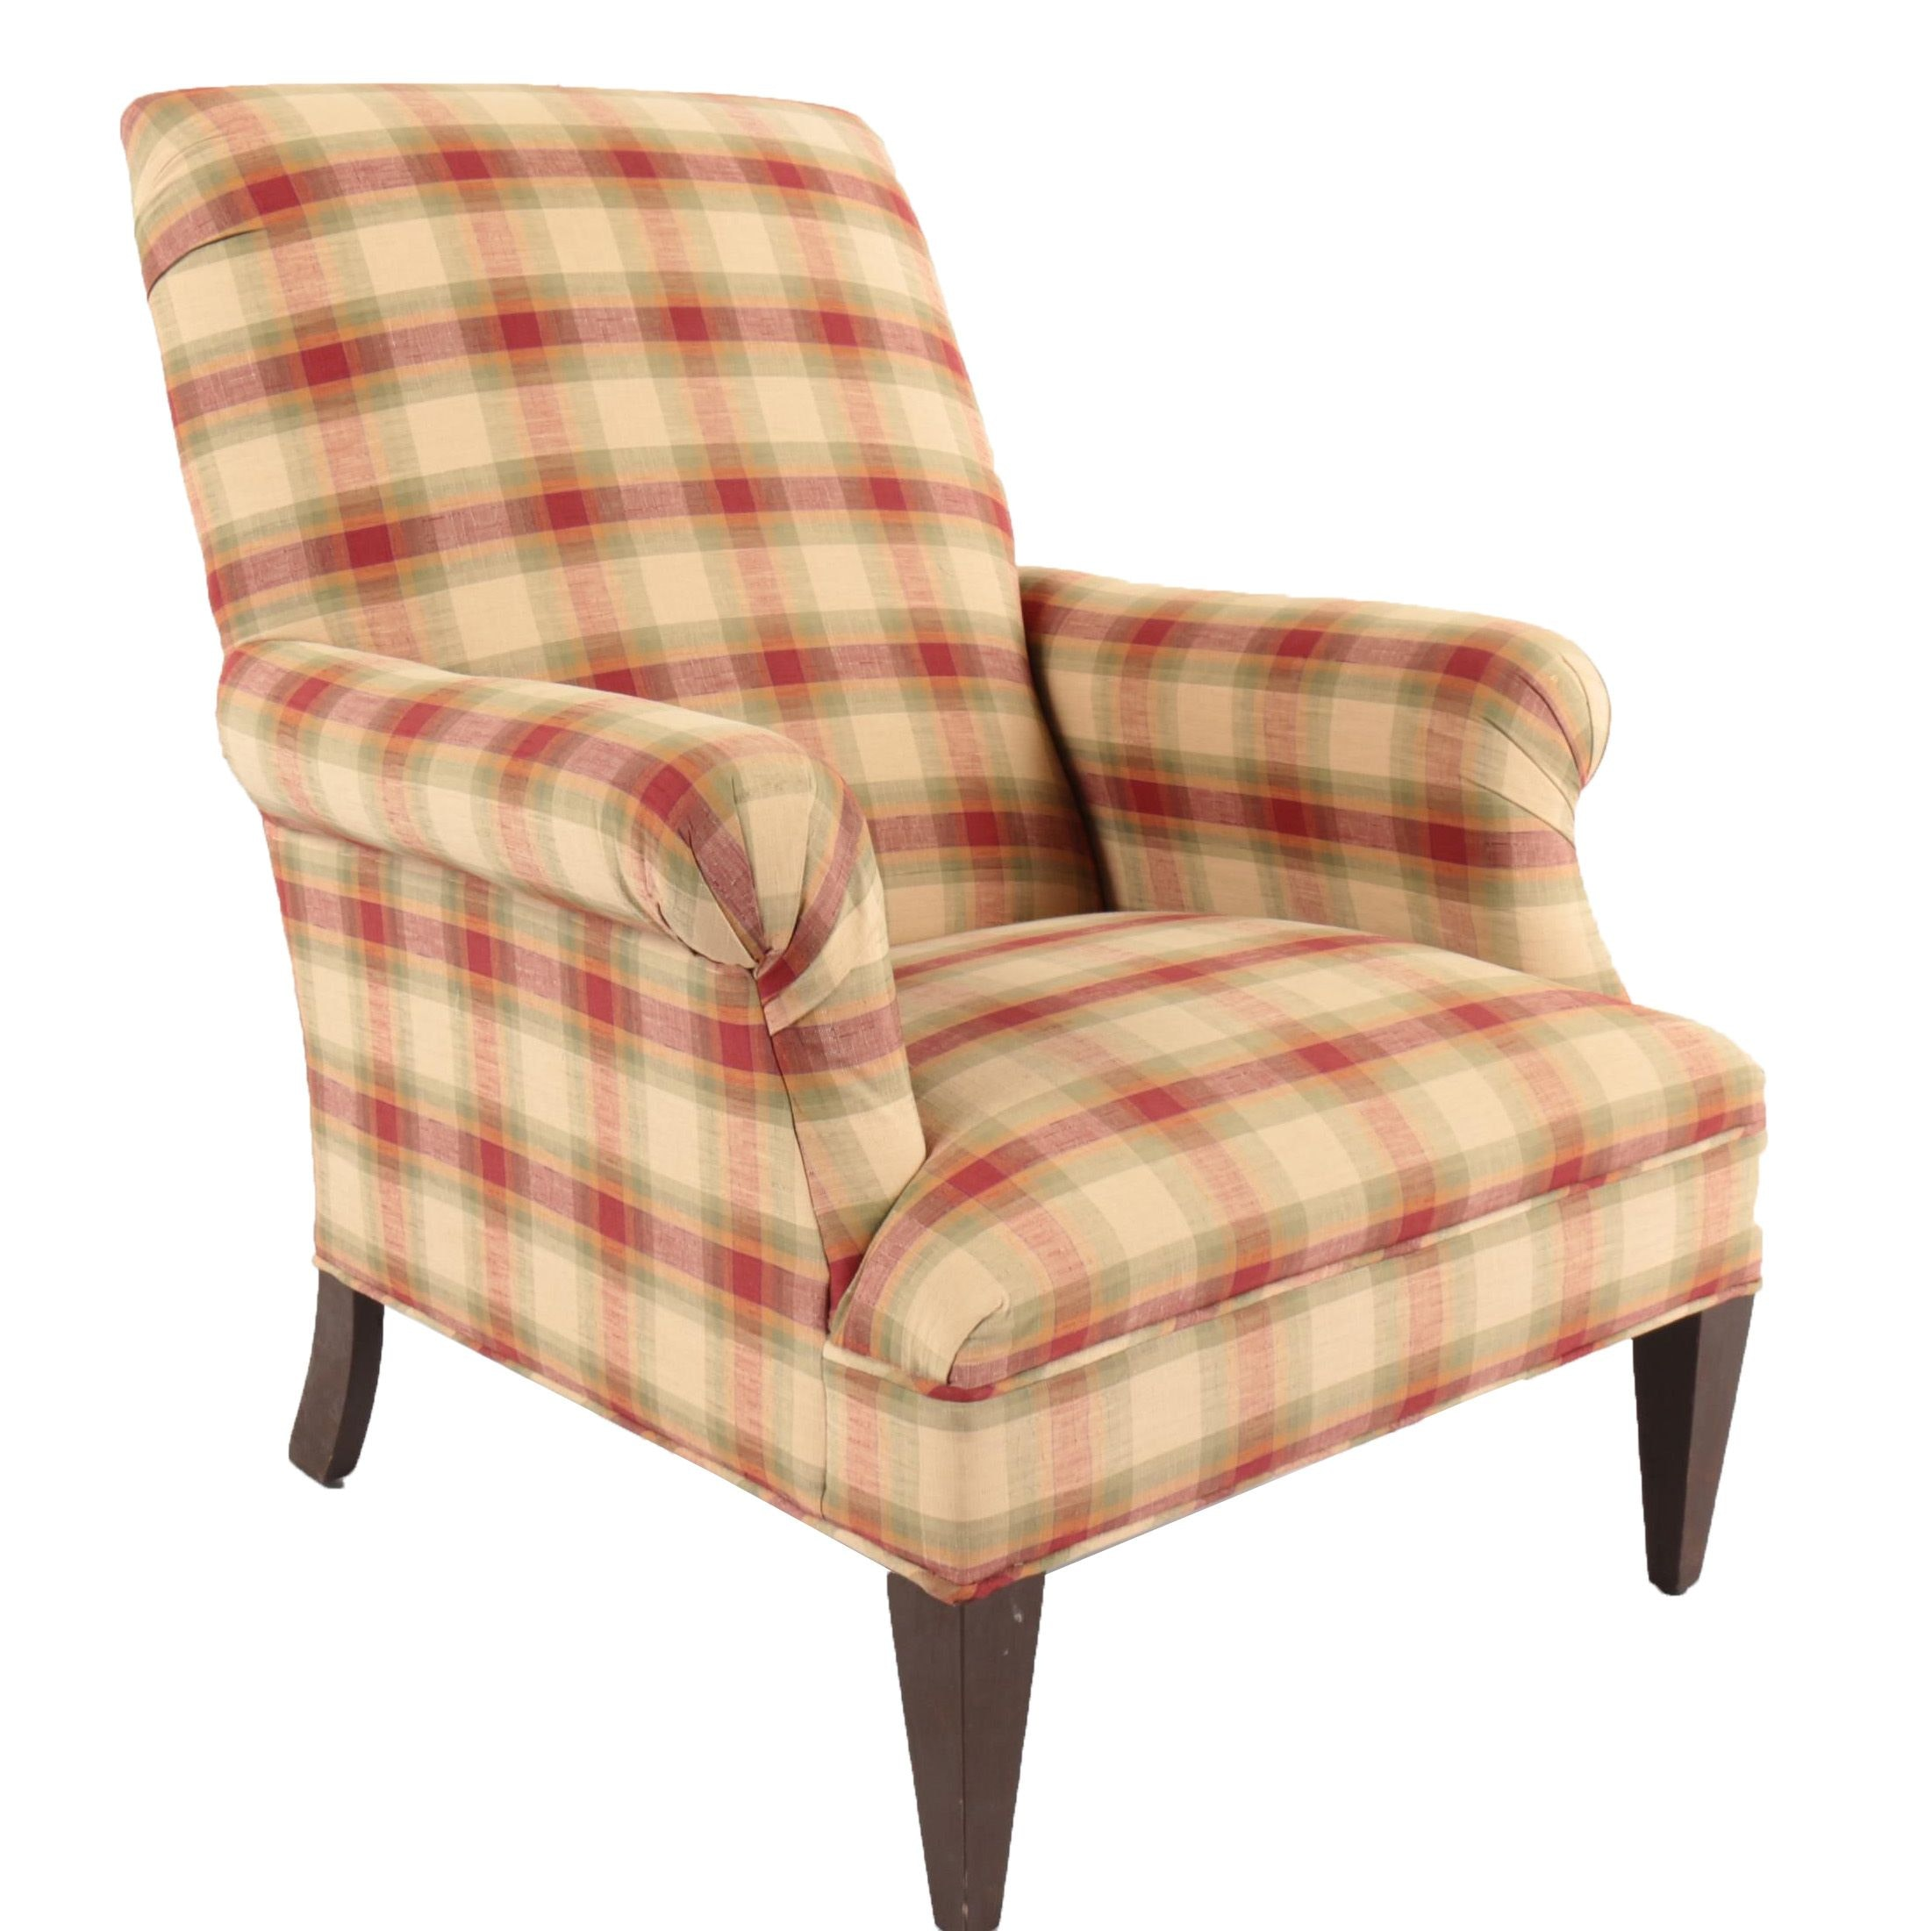 Contemporary Upholstered Armchair with Slipcover